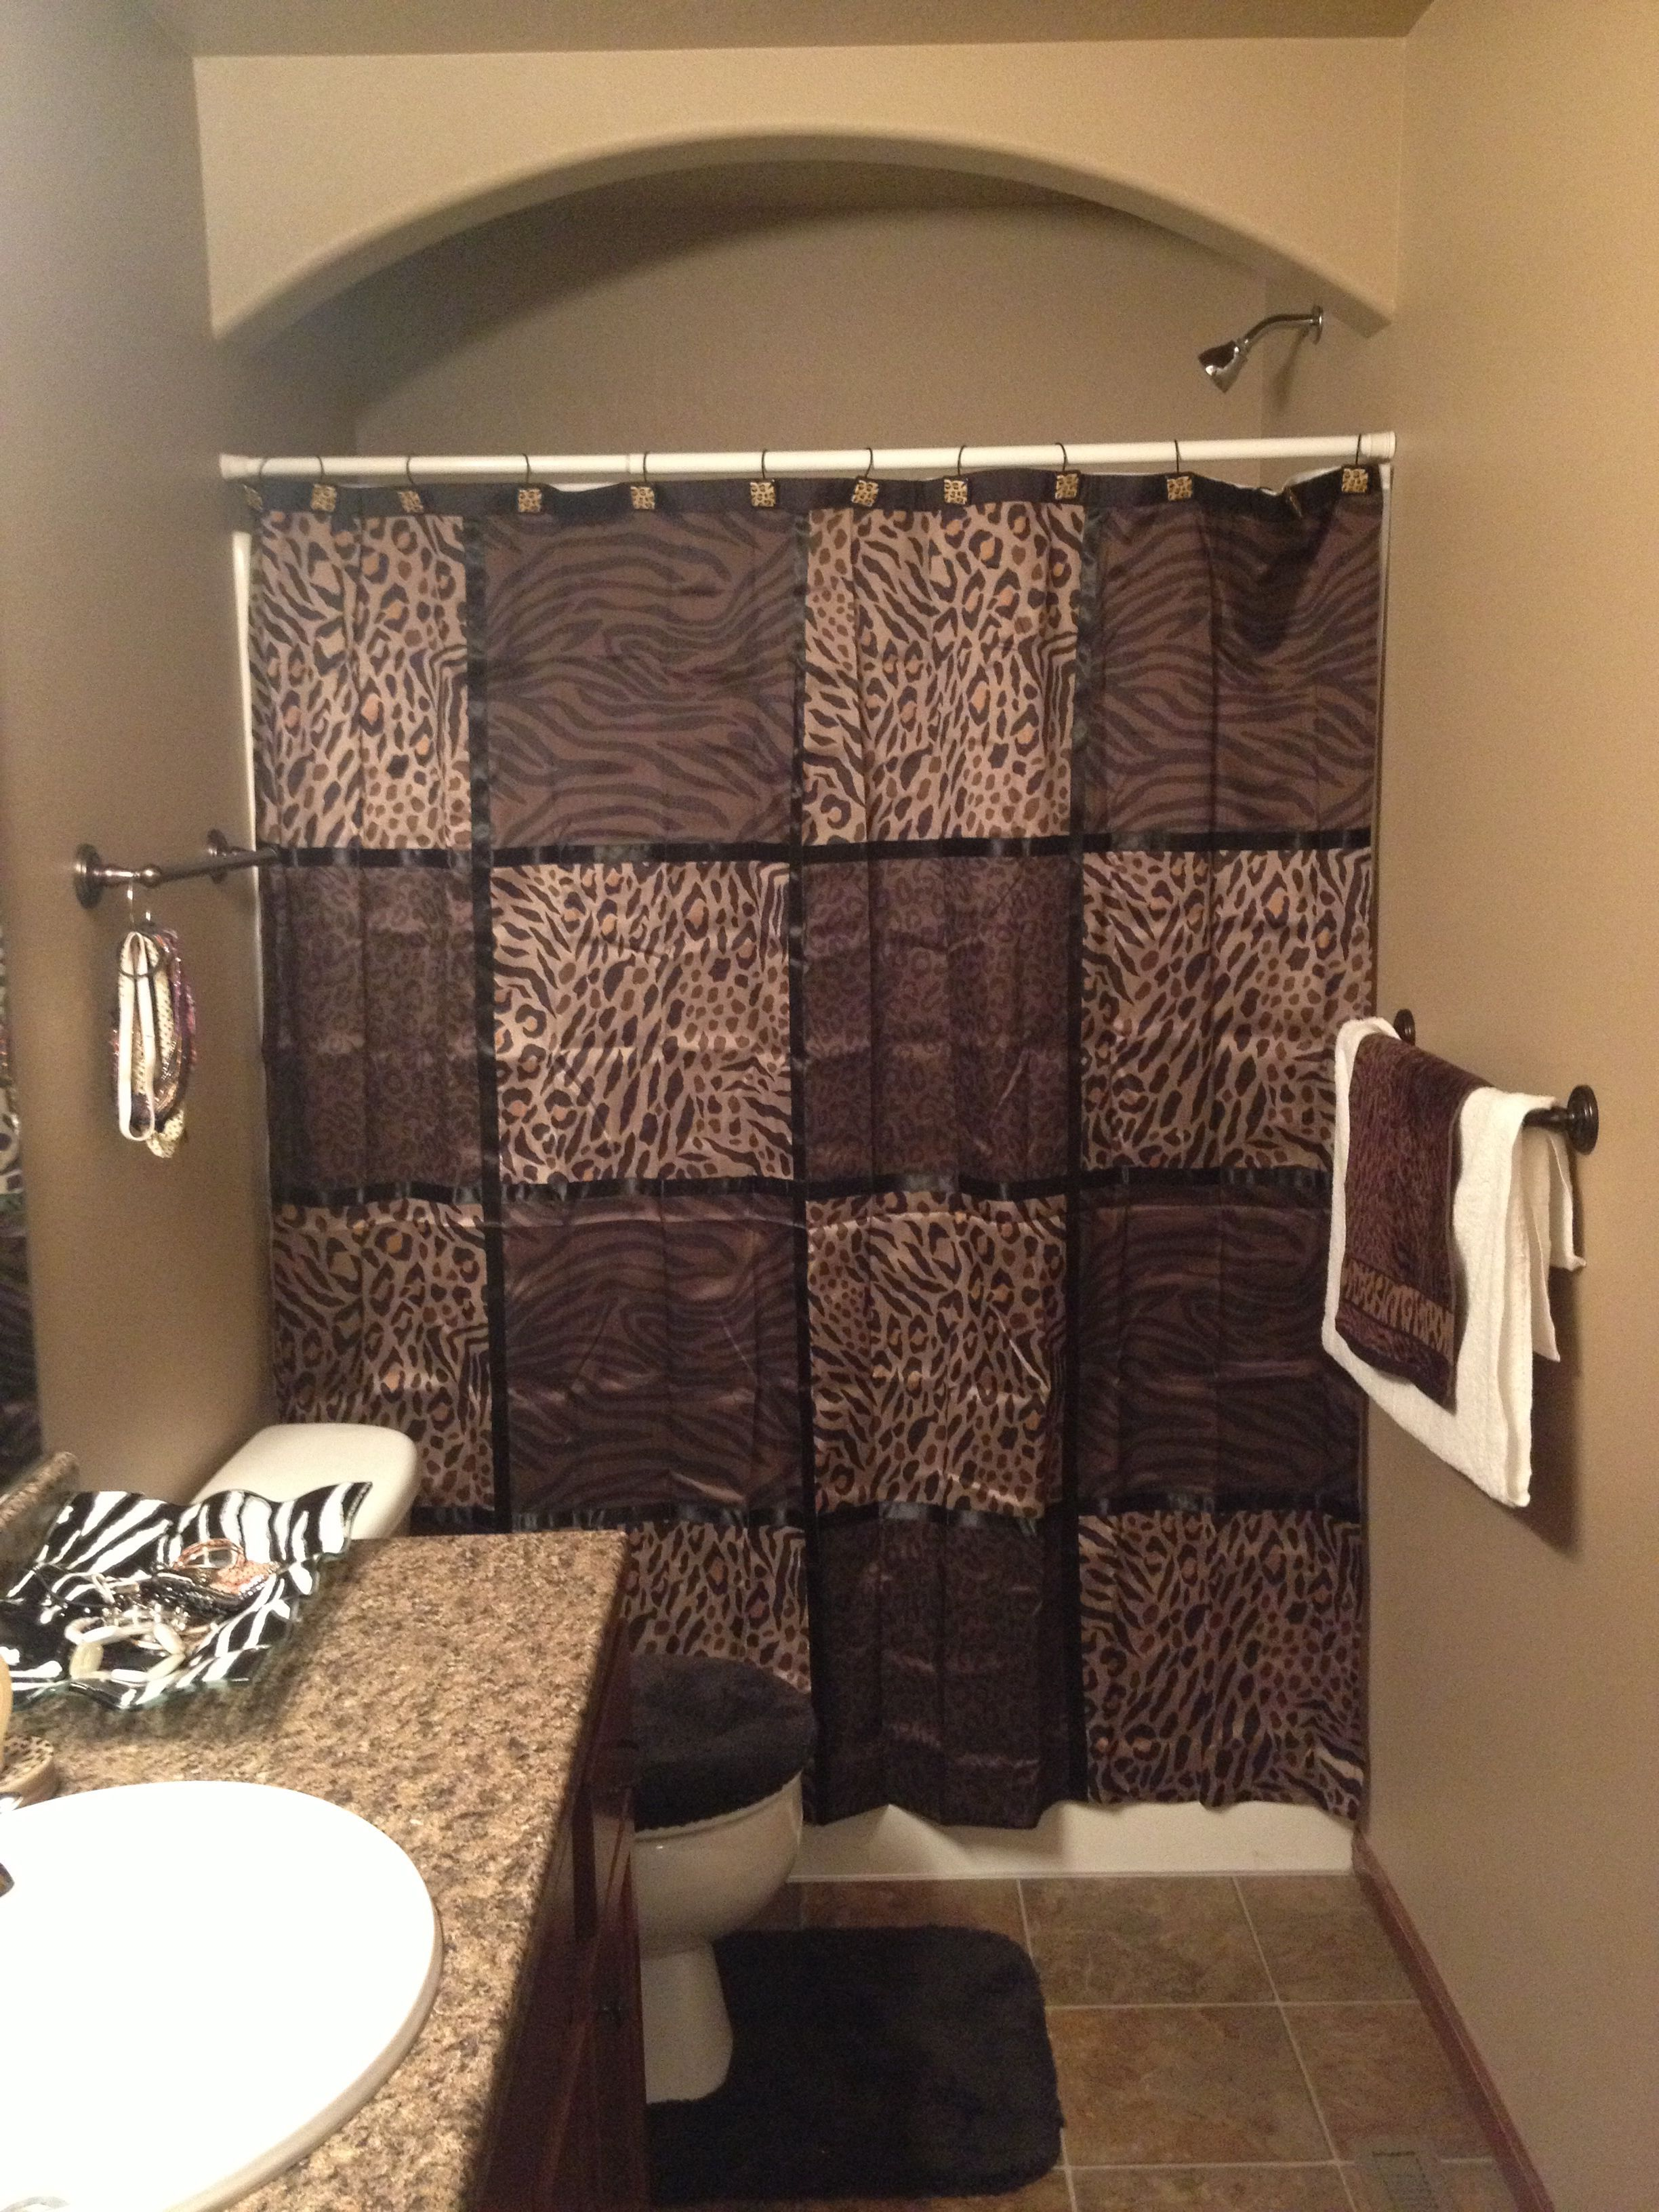 Bathroom Brown And Cheetah Decor Love This Leopard Print Bedroom